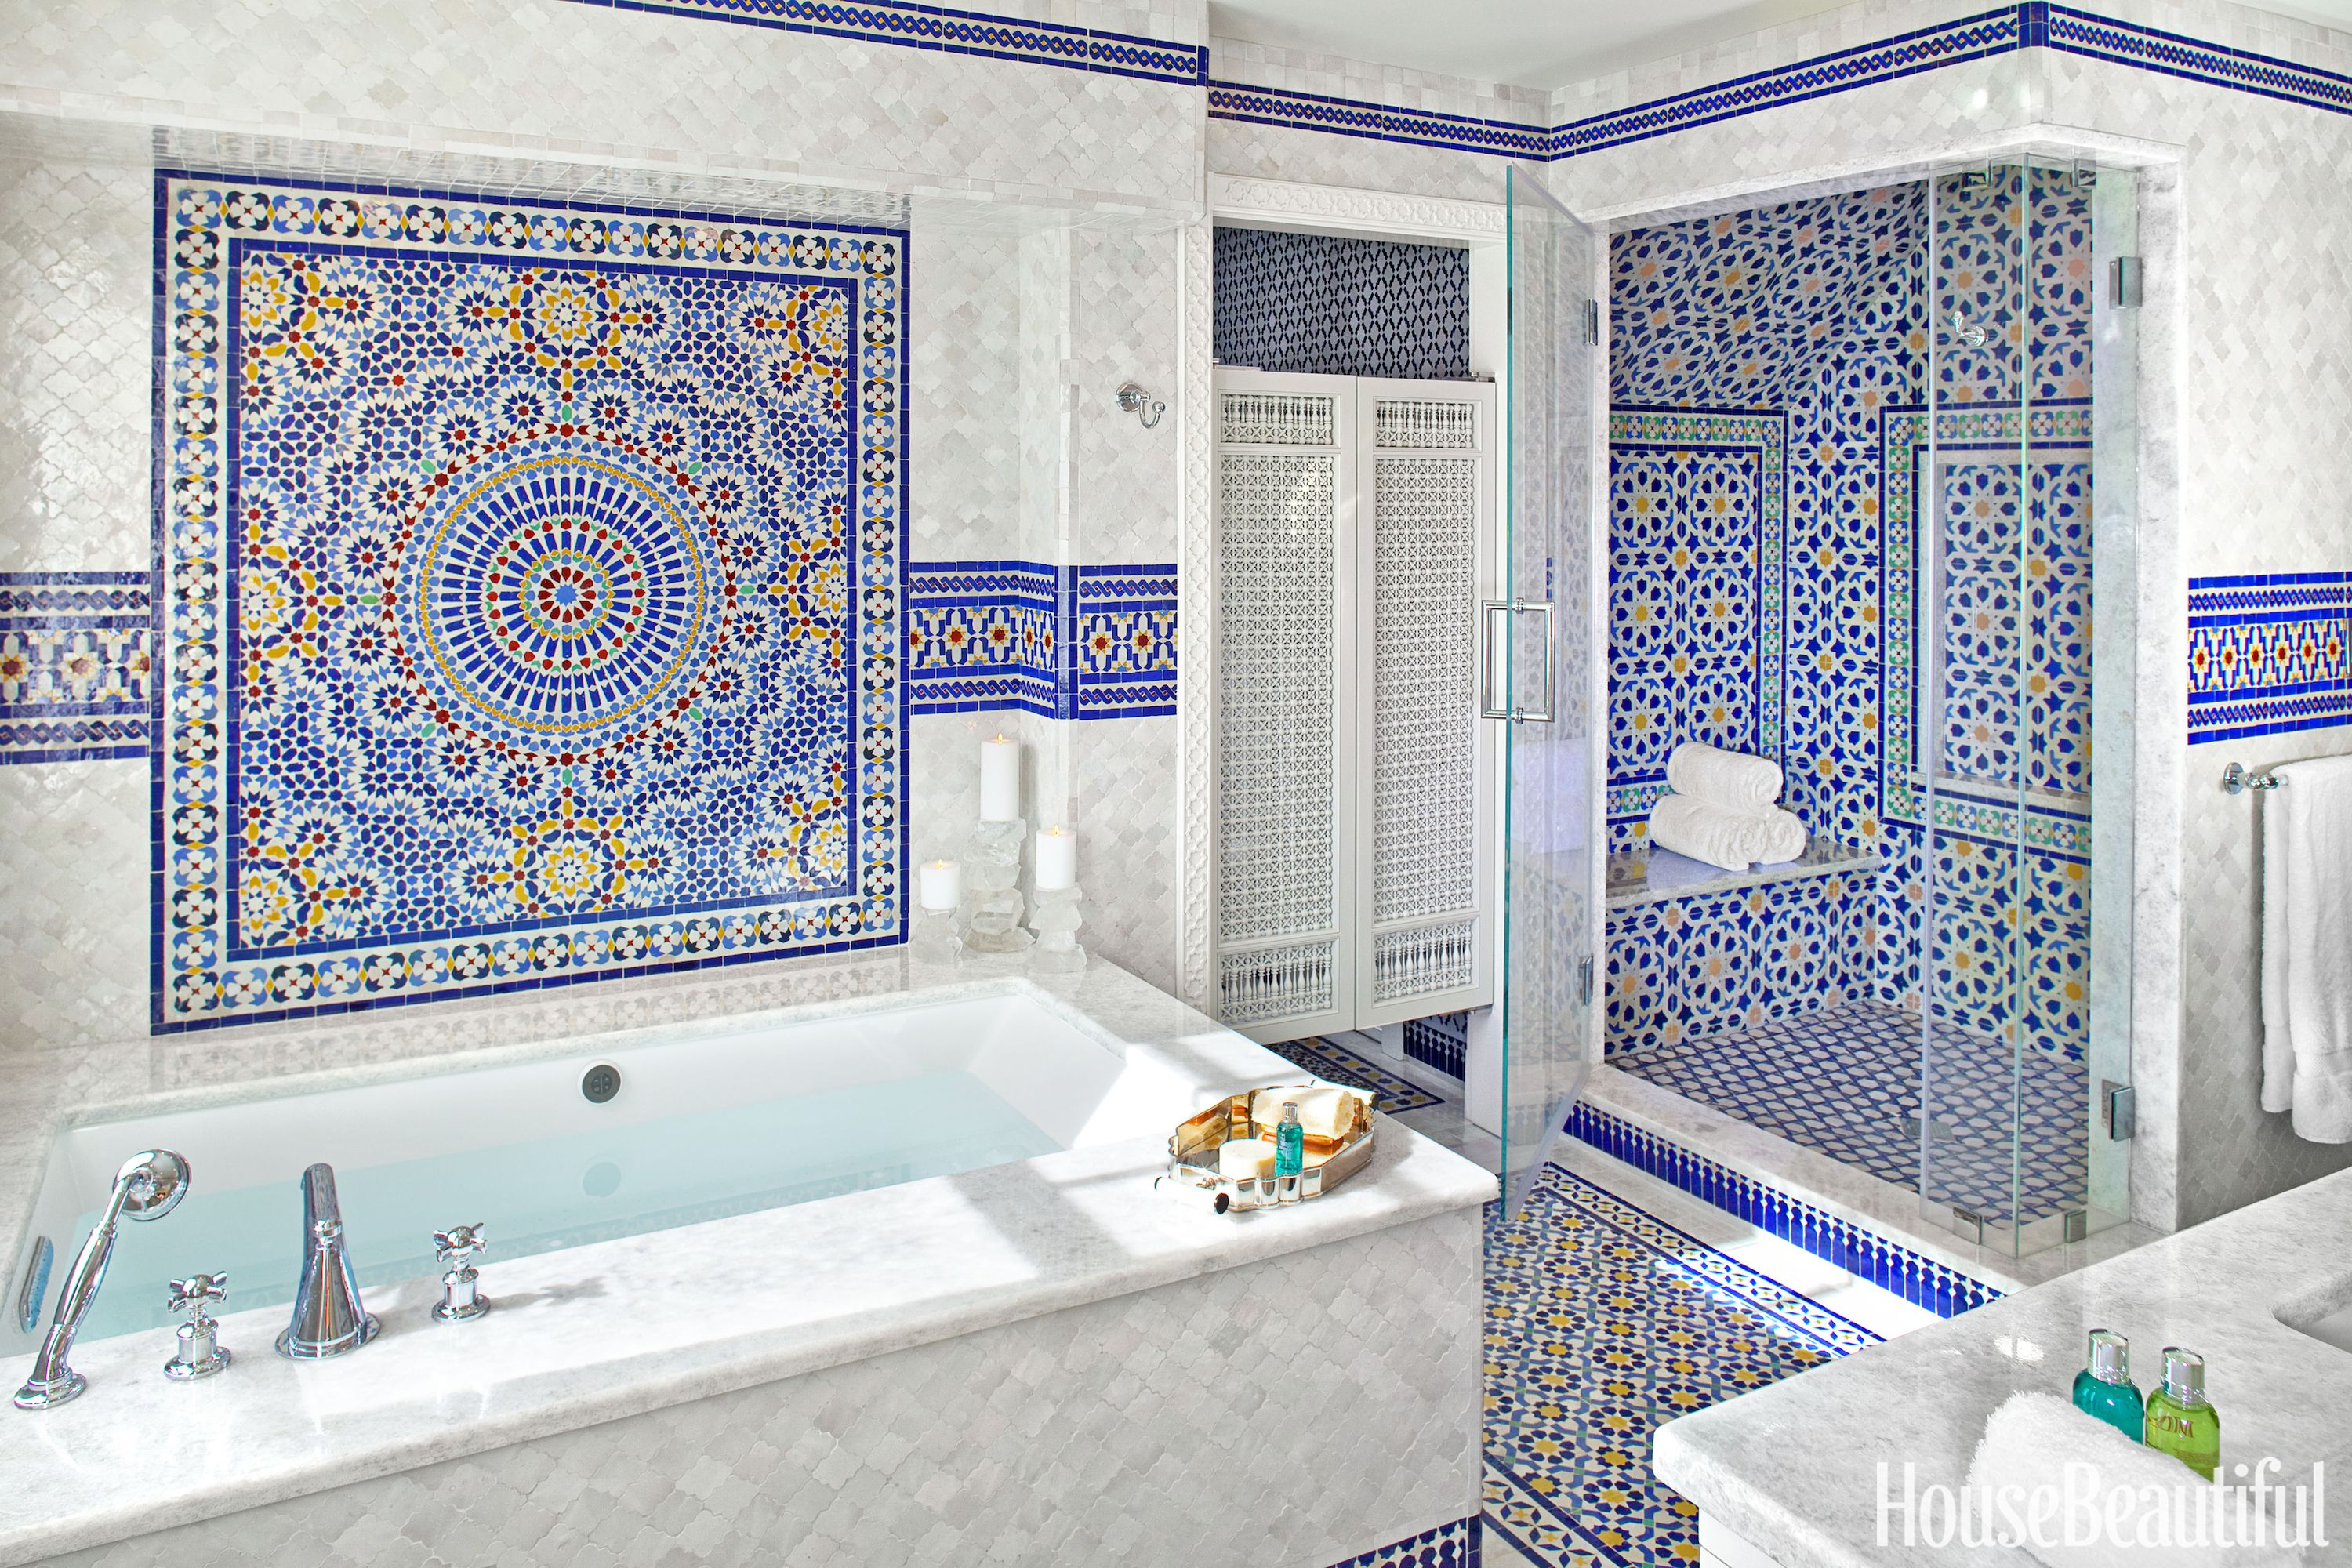 Moroccan bathroom accessories - 48 Bathroom Tile Design Ideas Tile Backsplash And Floor Designs For Bathrooms